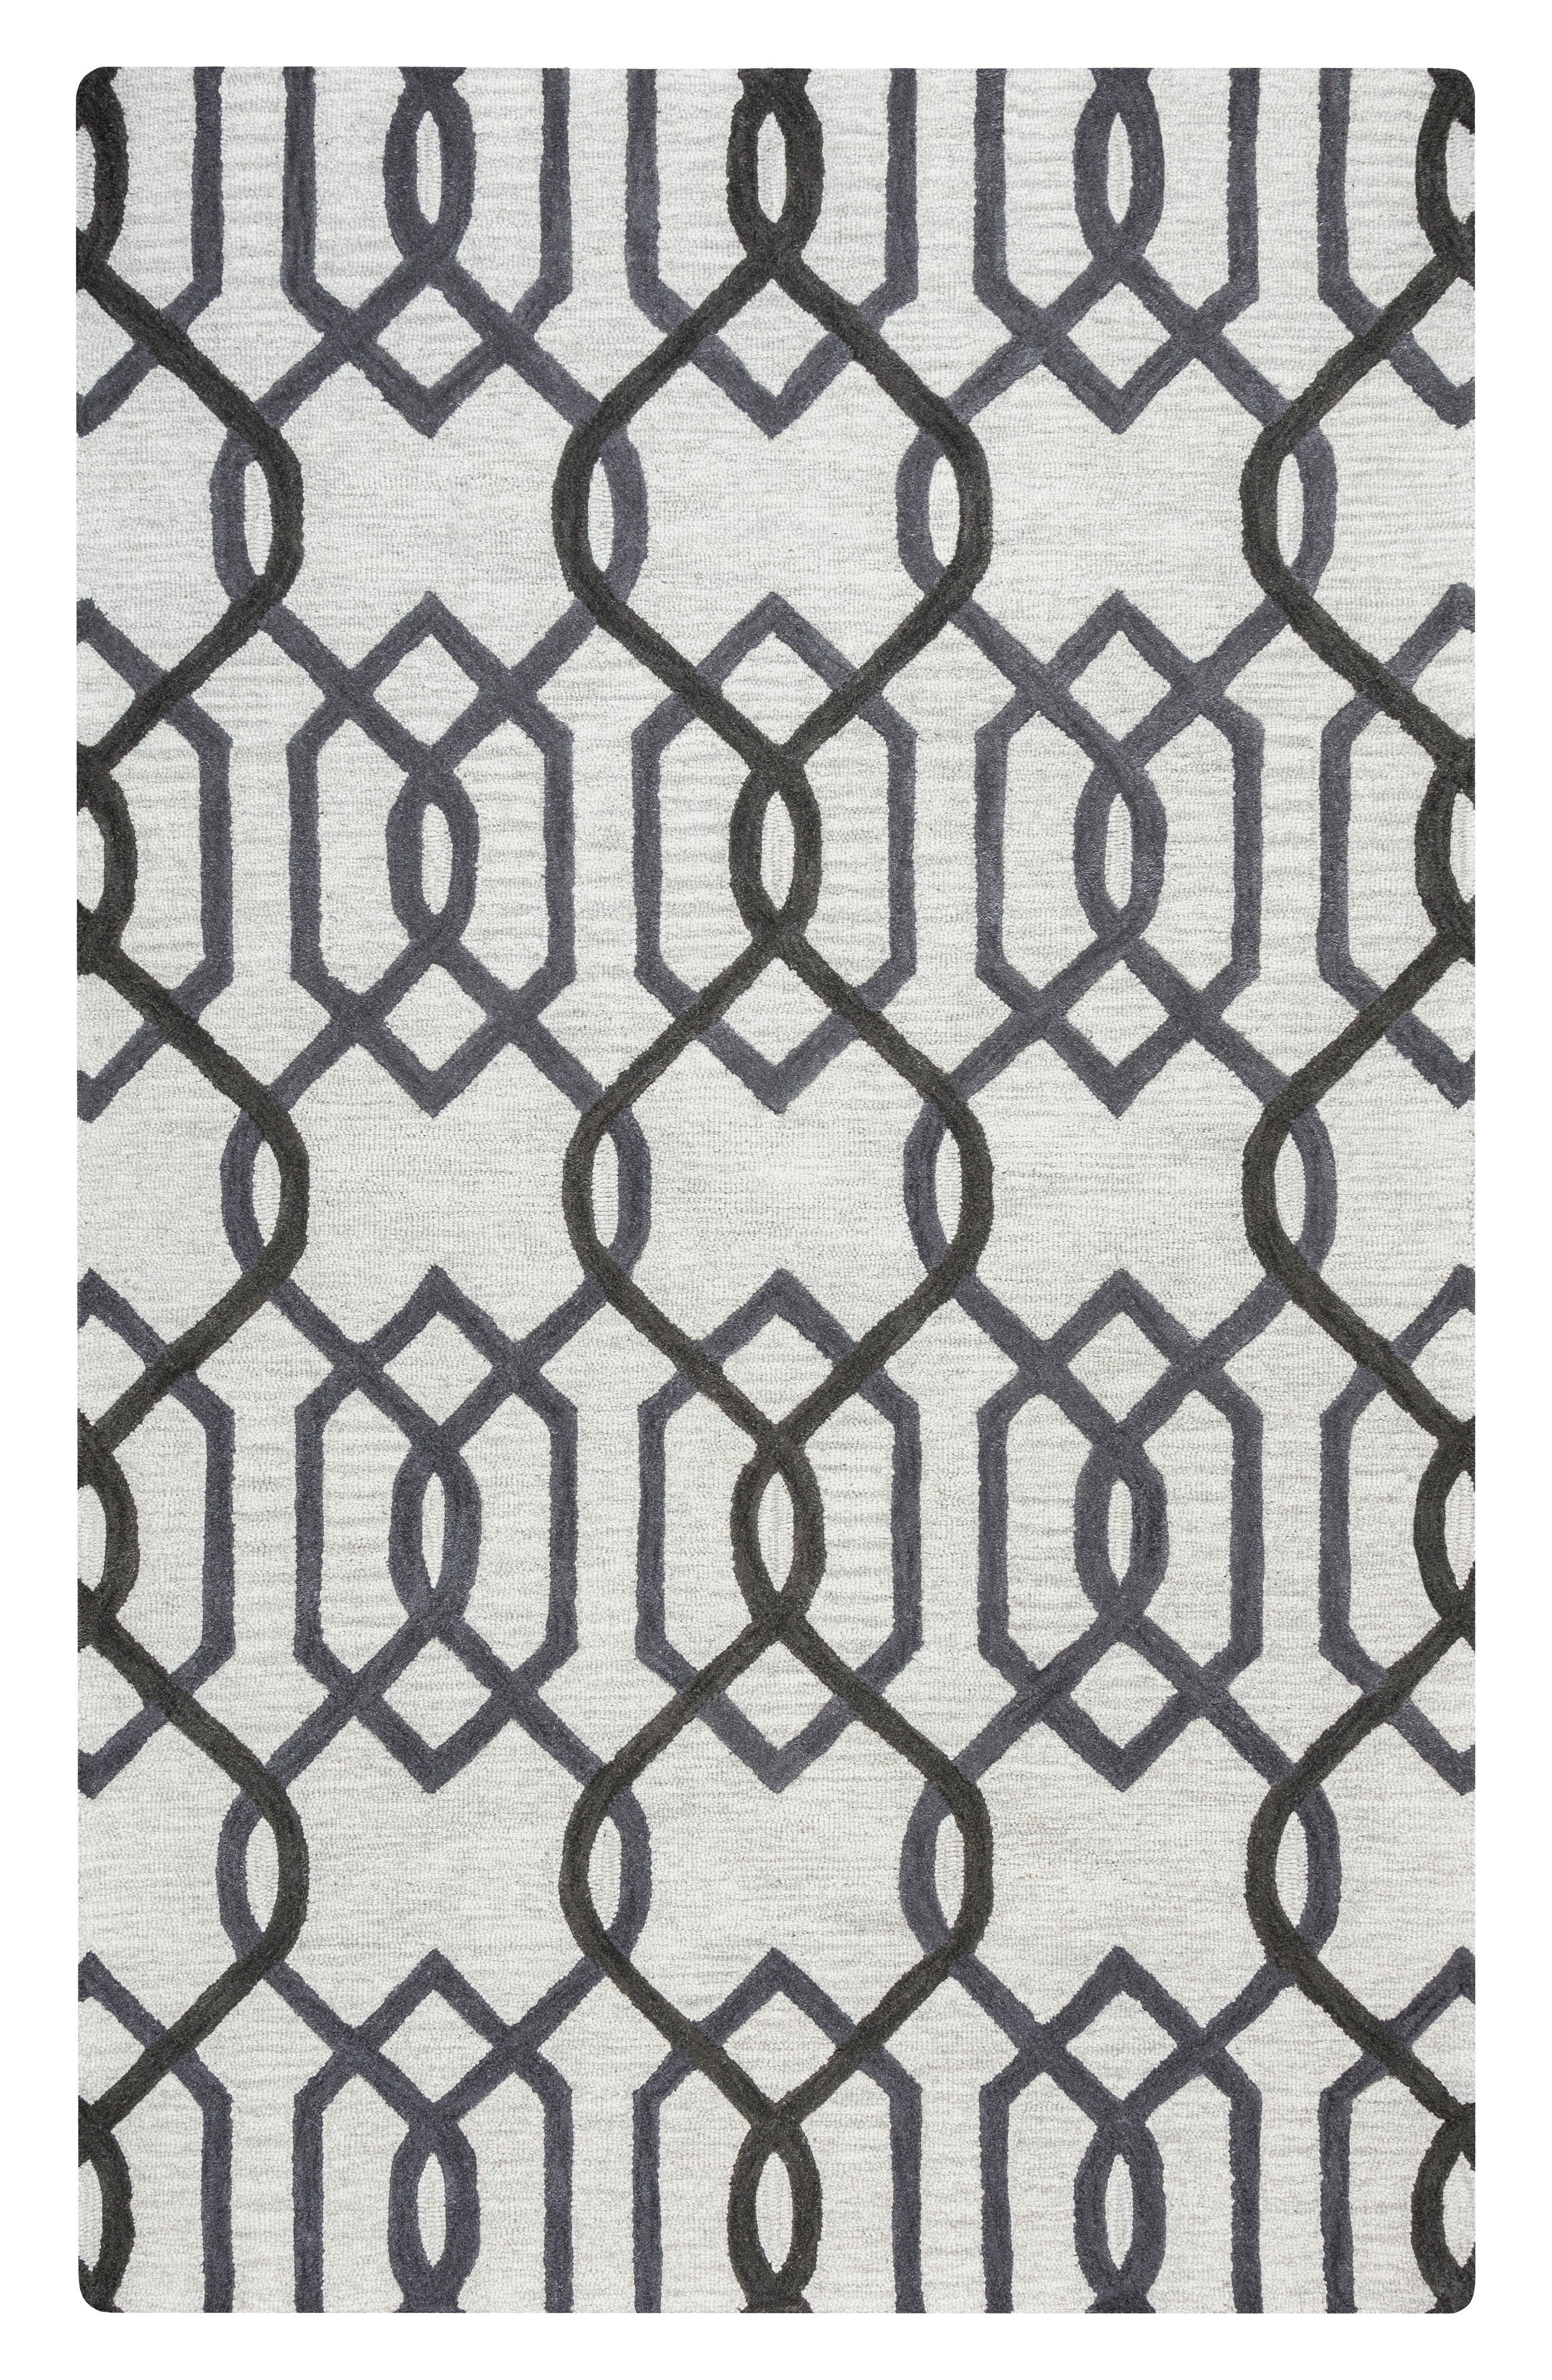 'Caterine Lines' Hand Tufted Wool Area Rug,                             Main thumbnail 1, color,                             020